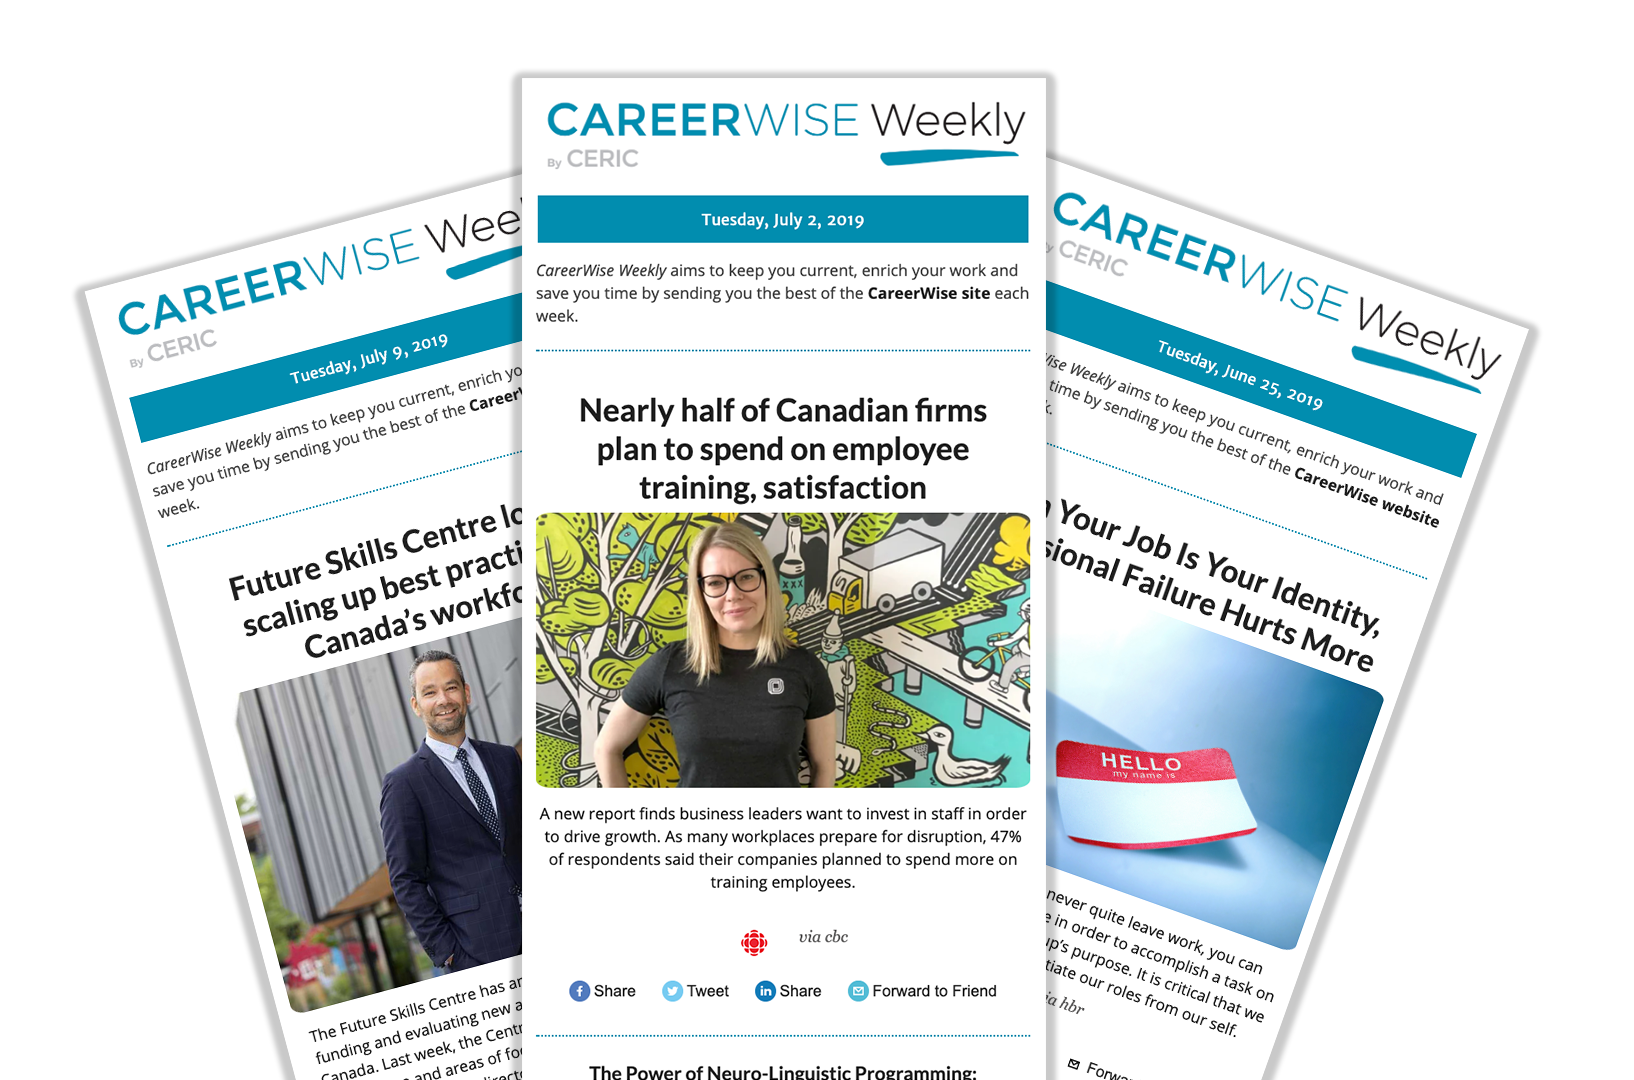 CERIC | Advancing Career Development in Canada